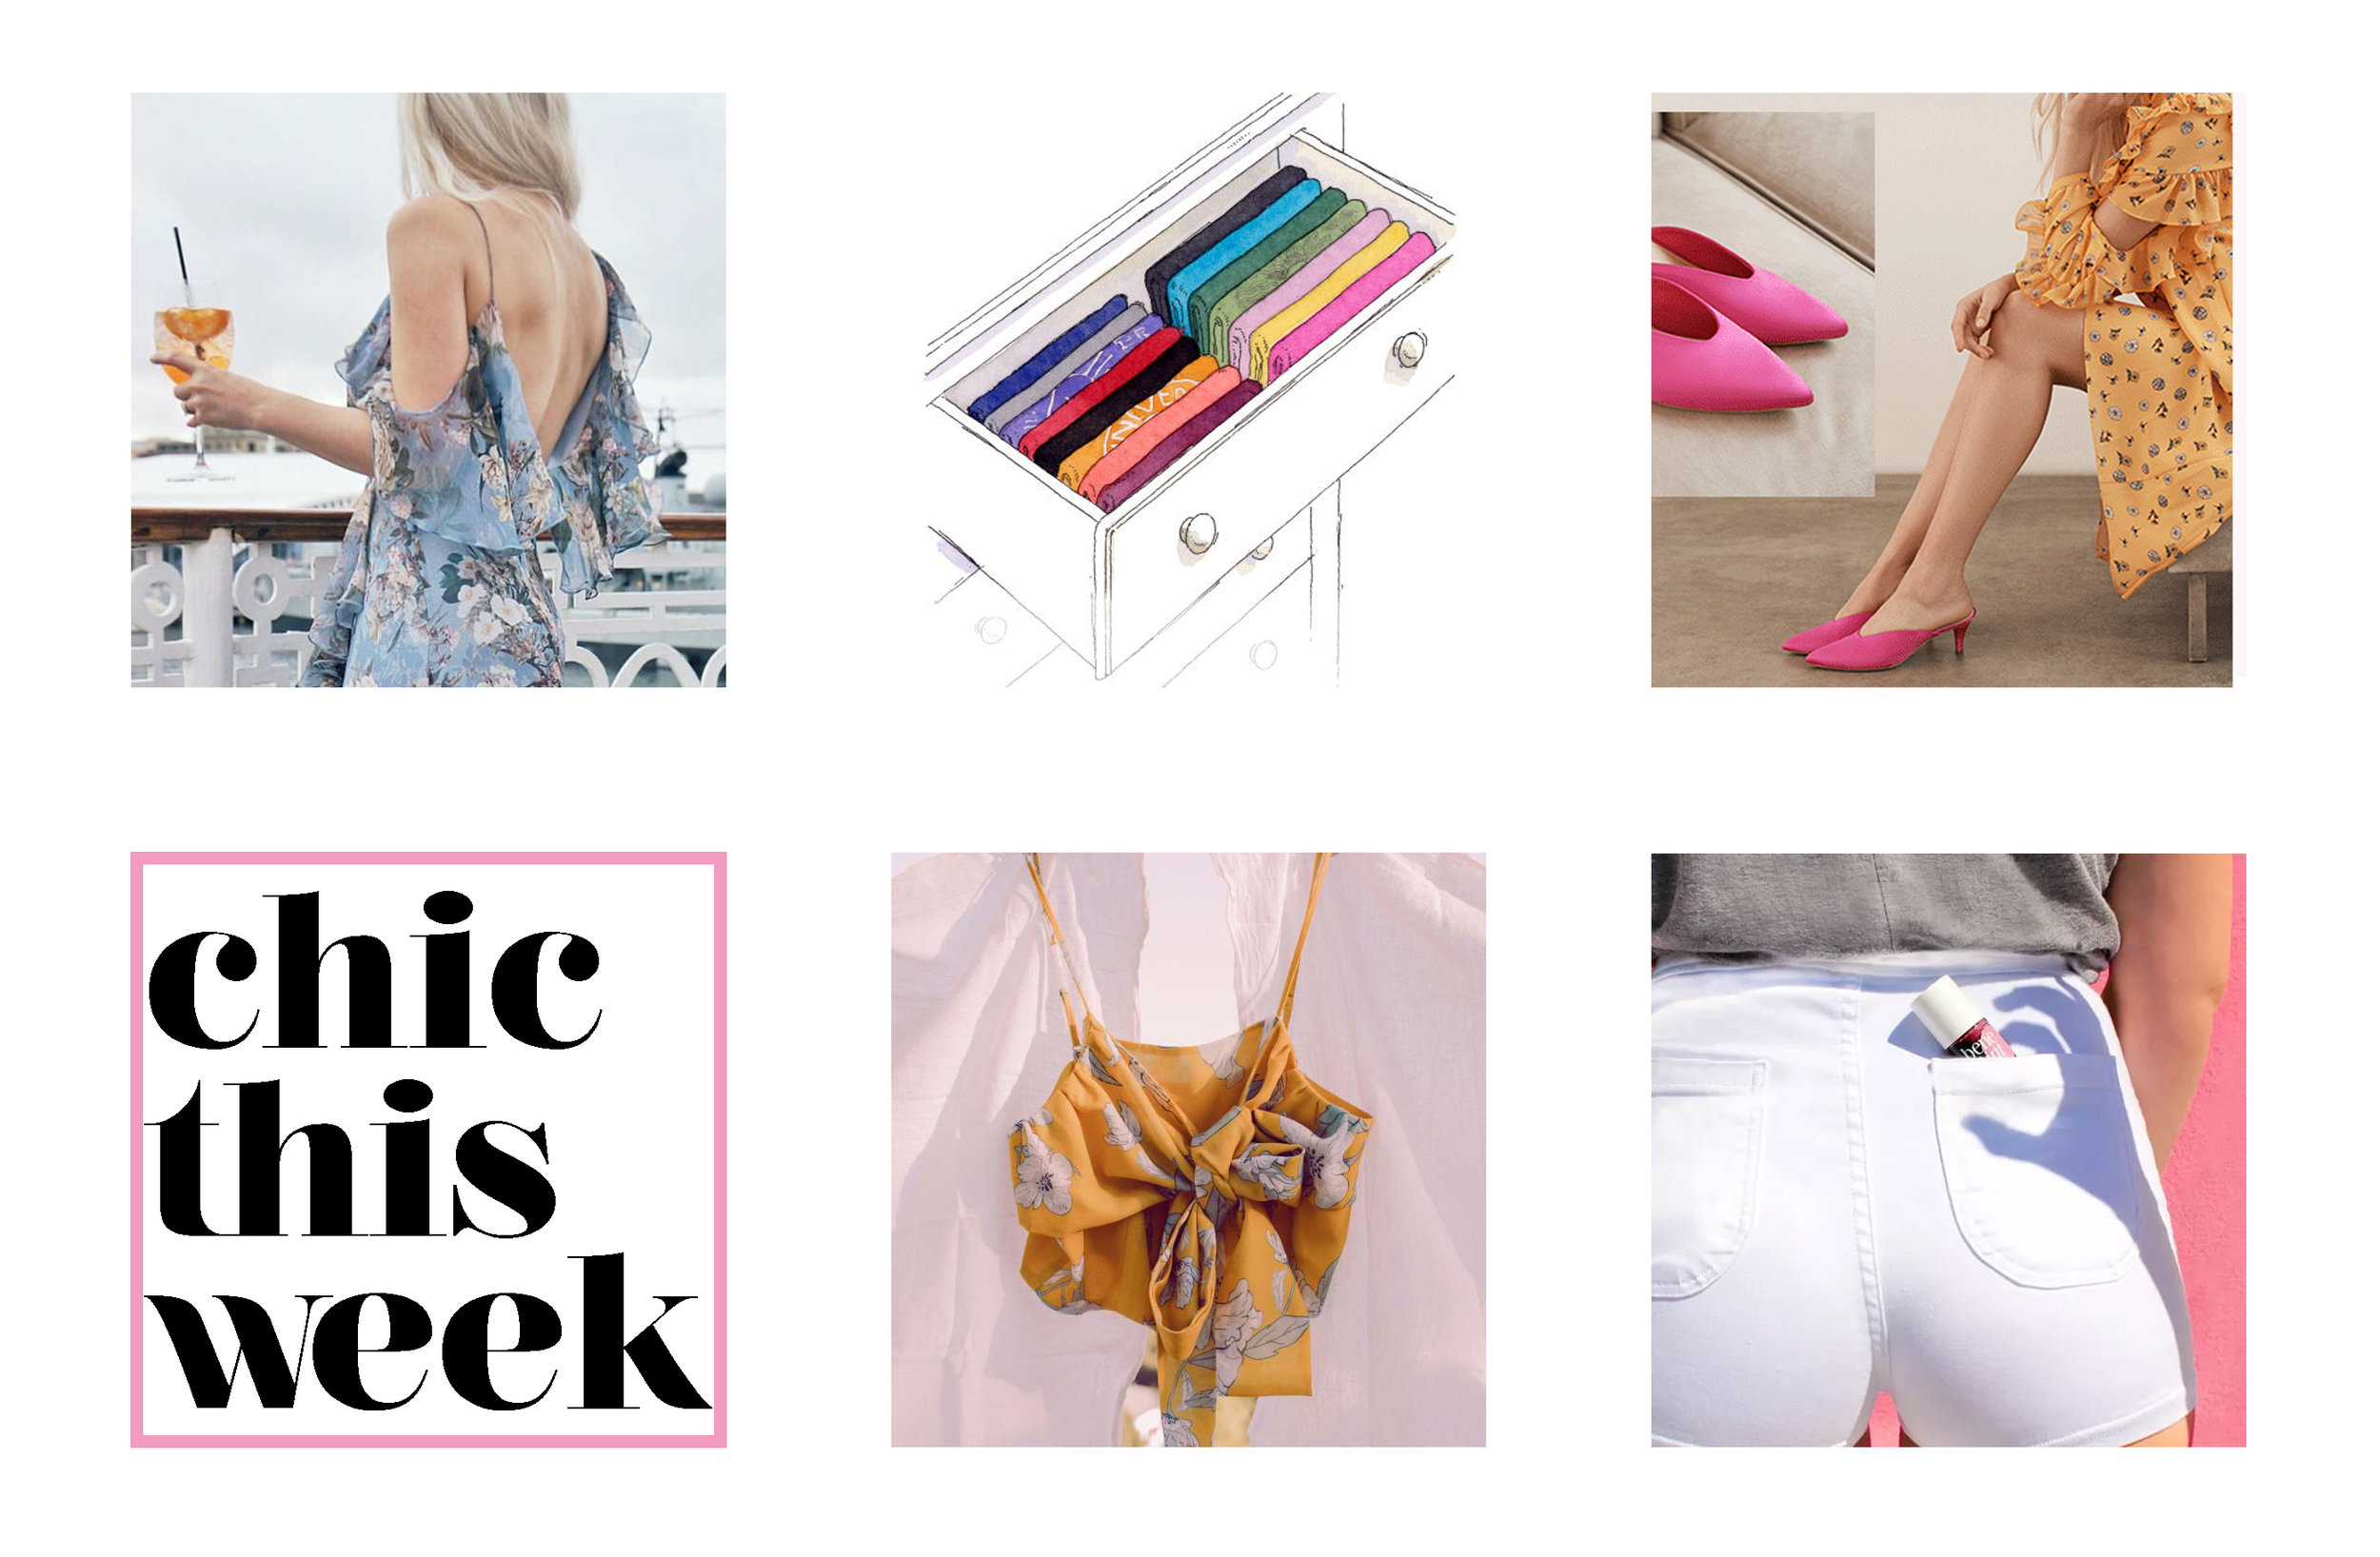 What's CHIC this week (vol. 054)